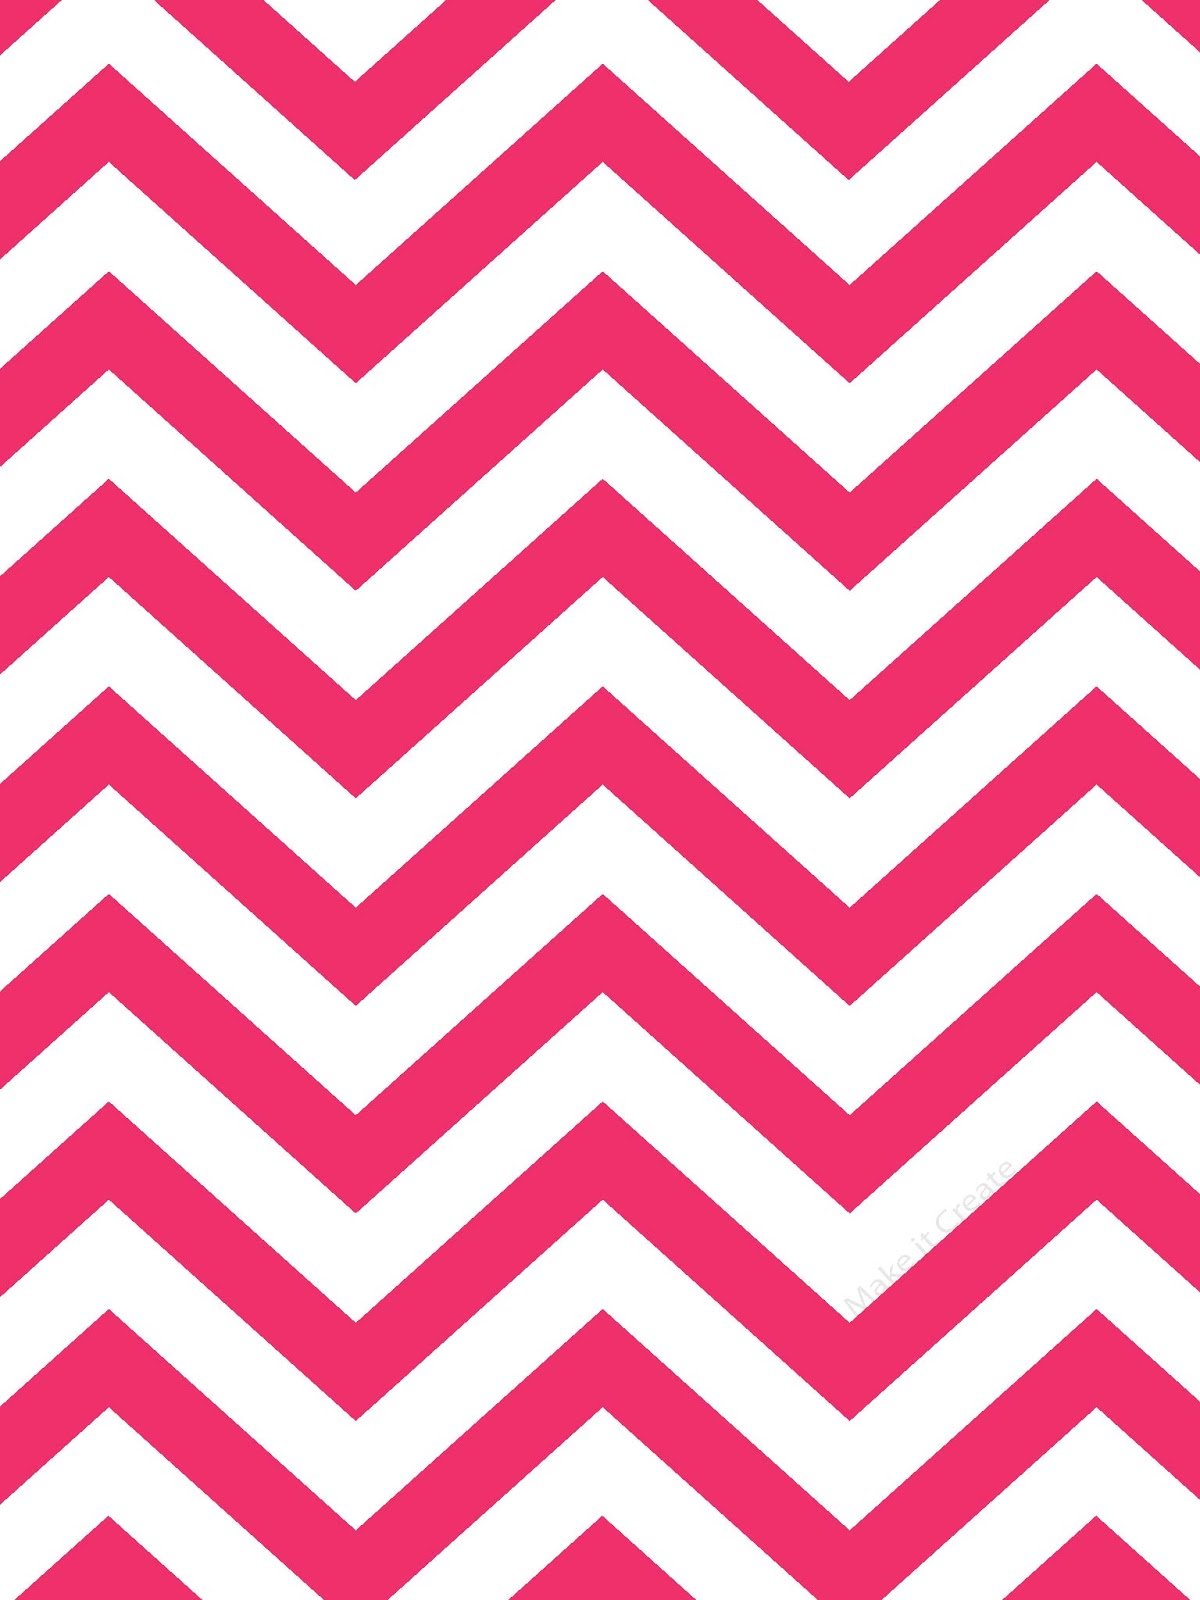 Julesoca Blog Chevron For IPad